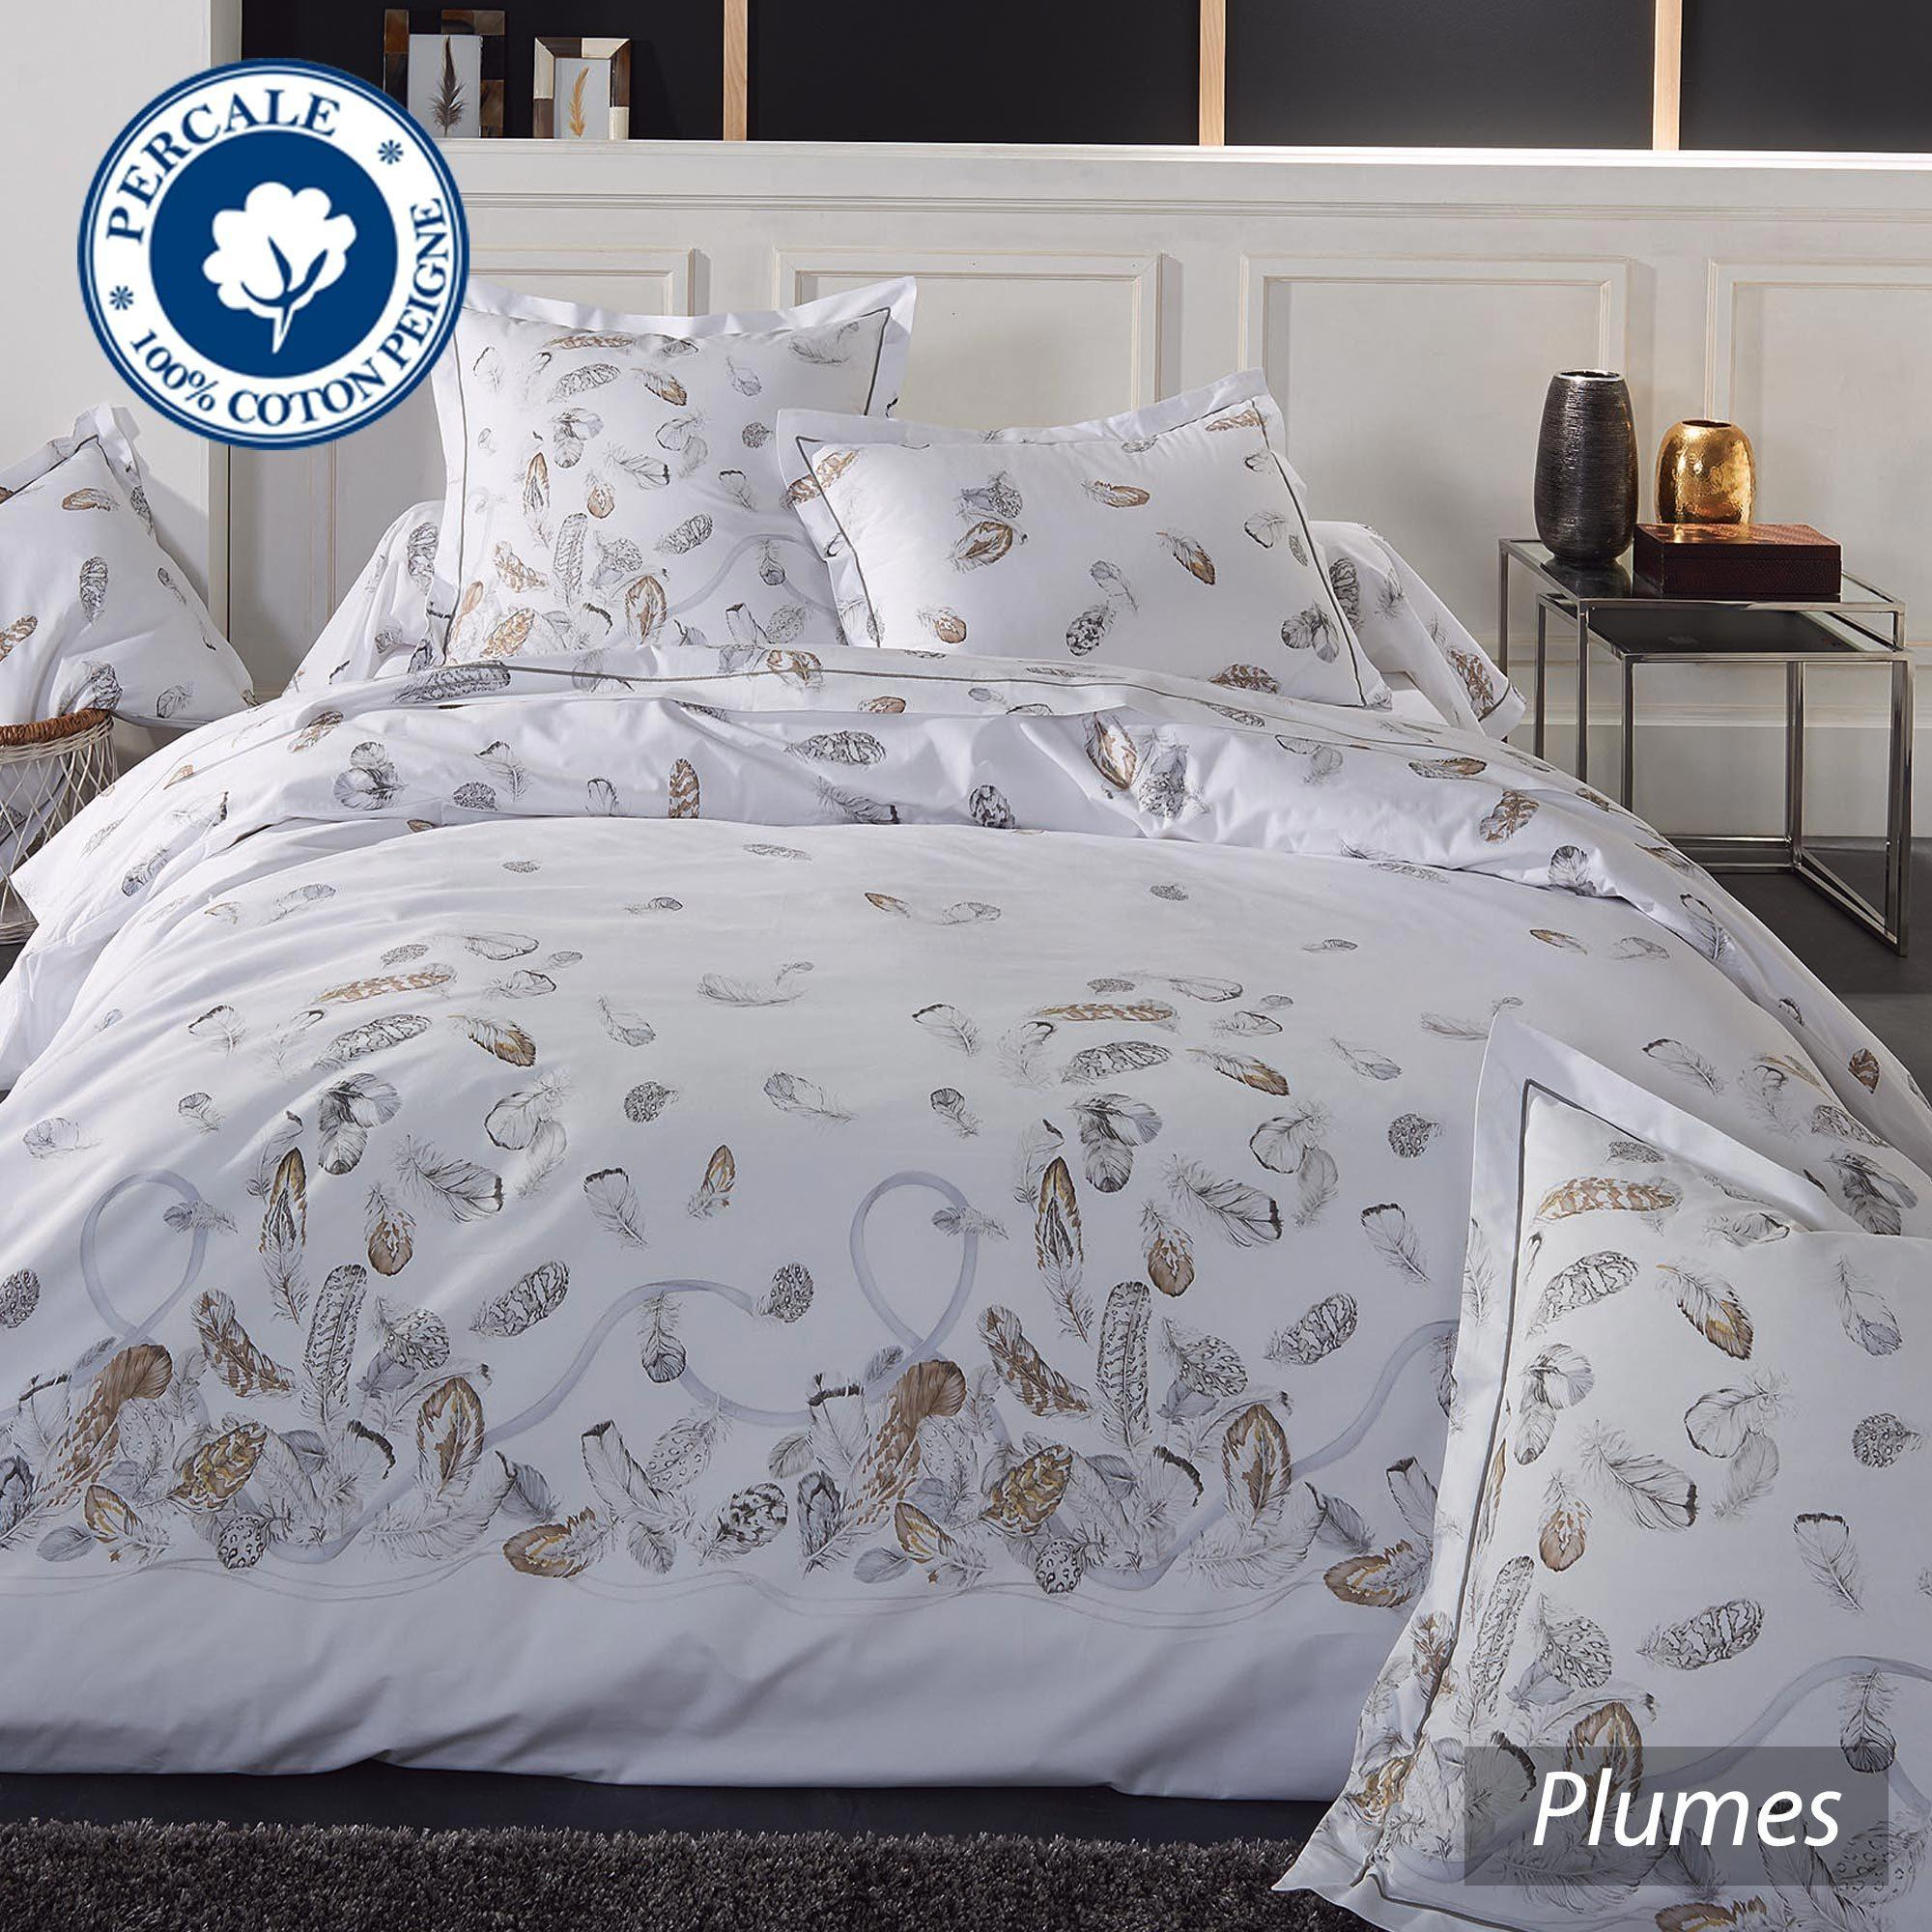 parure de lit percale pur coton peign 240x220 cm plumes linnea vente de linge de maison. Black Bedroom Furniture Sets. Home Design Ideas